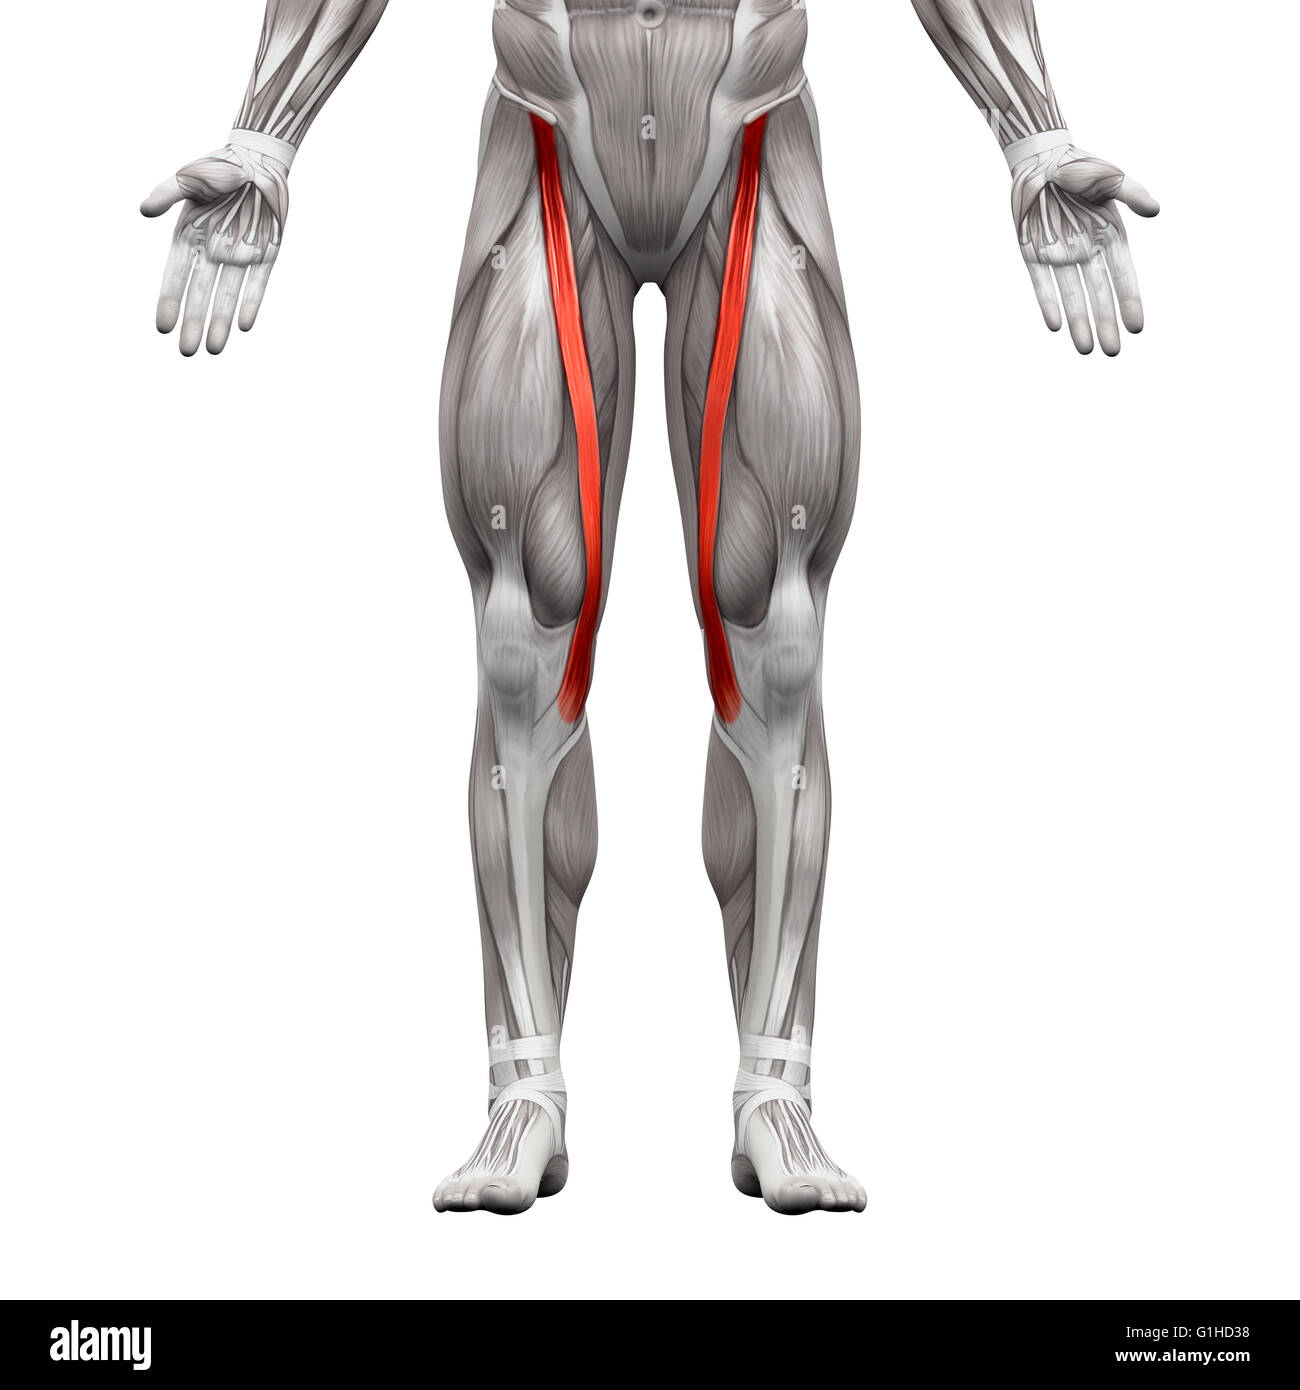 Sartorius Muscle - Anatomy Muscles isolated on white - 3D ...